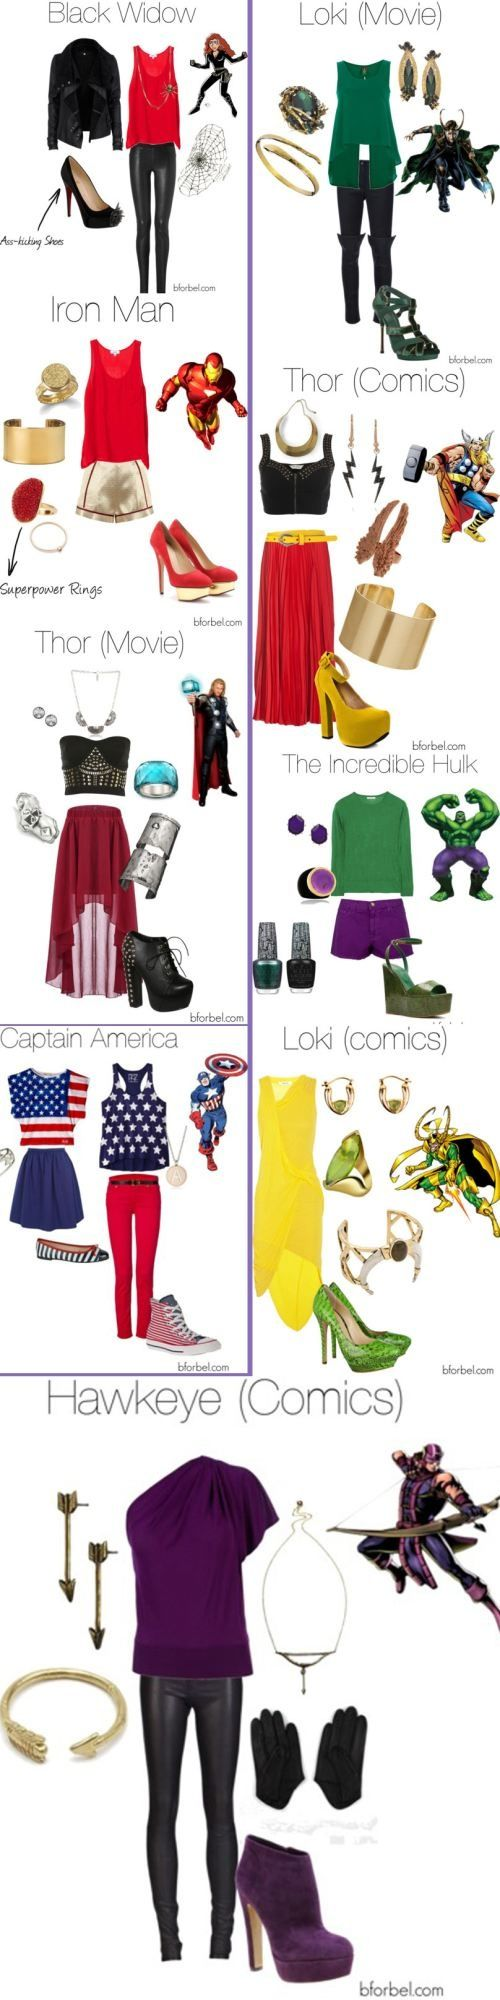 Avengers outfits. I LOVE the Thor (movie) outfit.